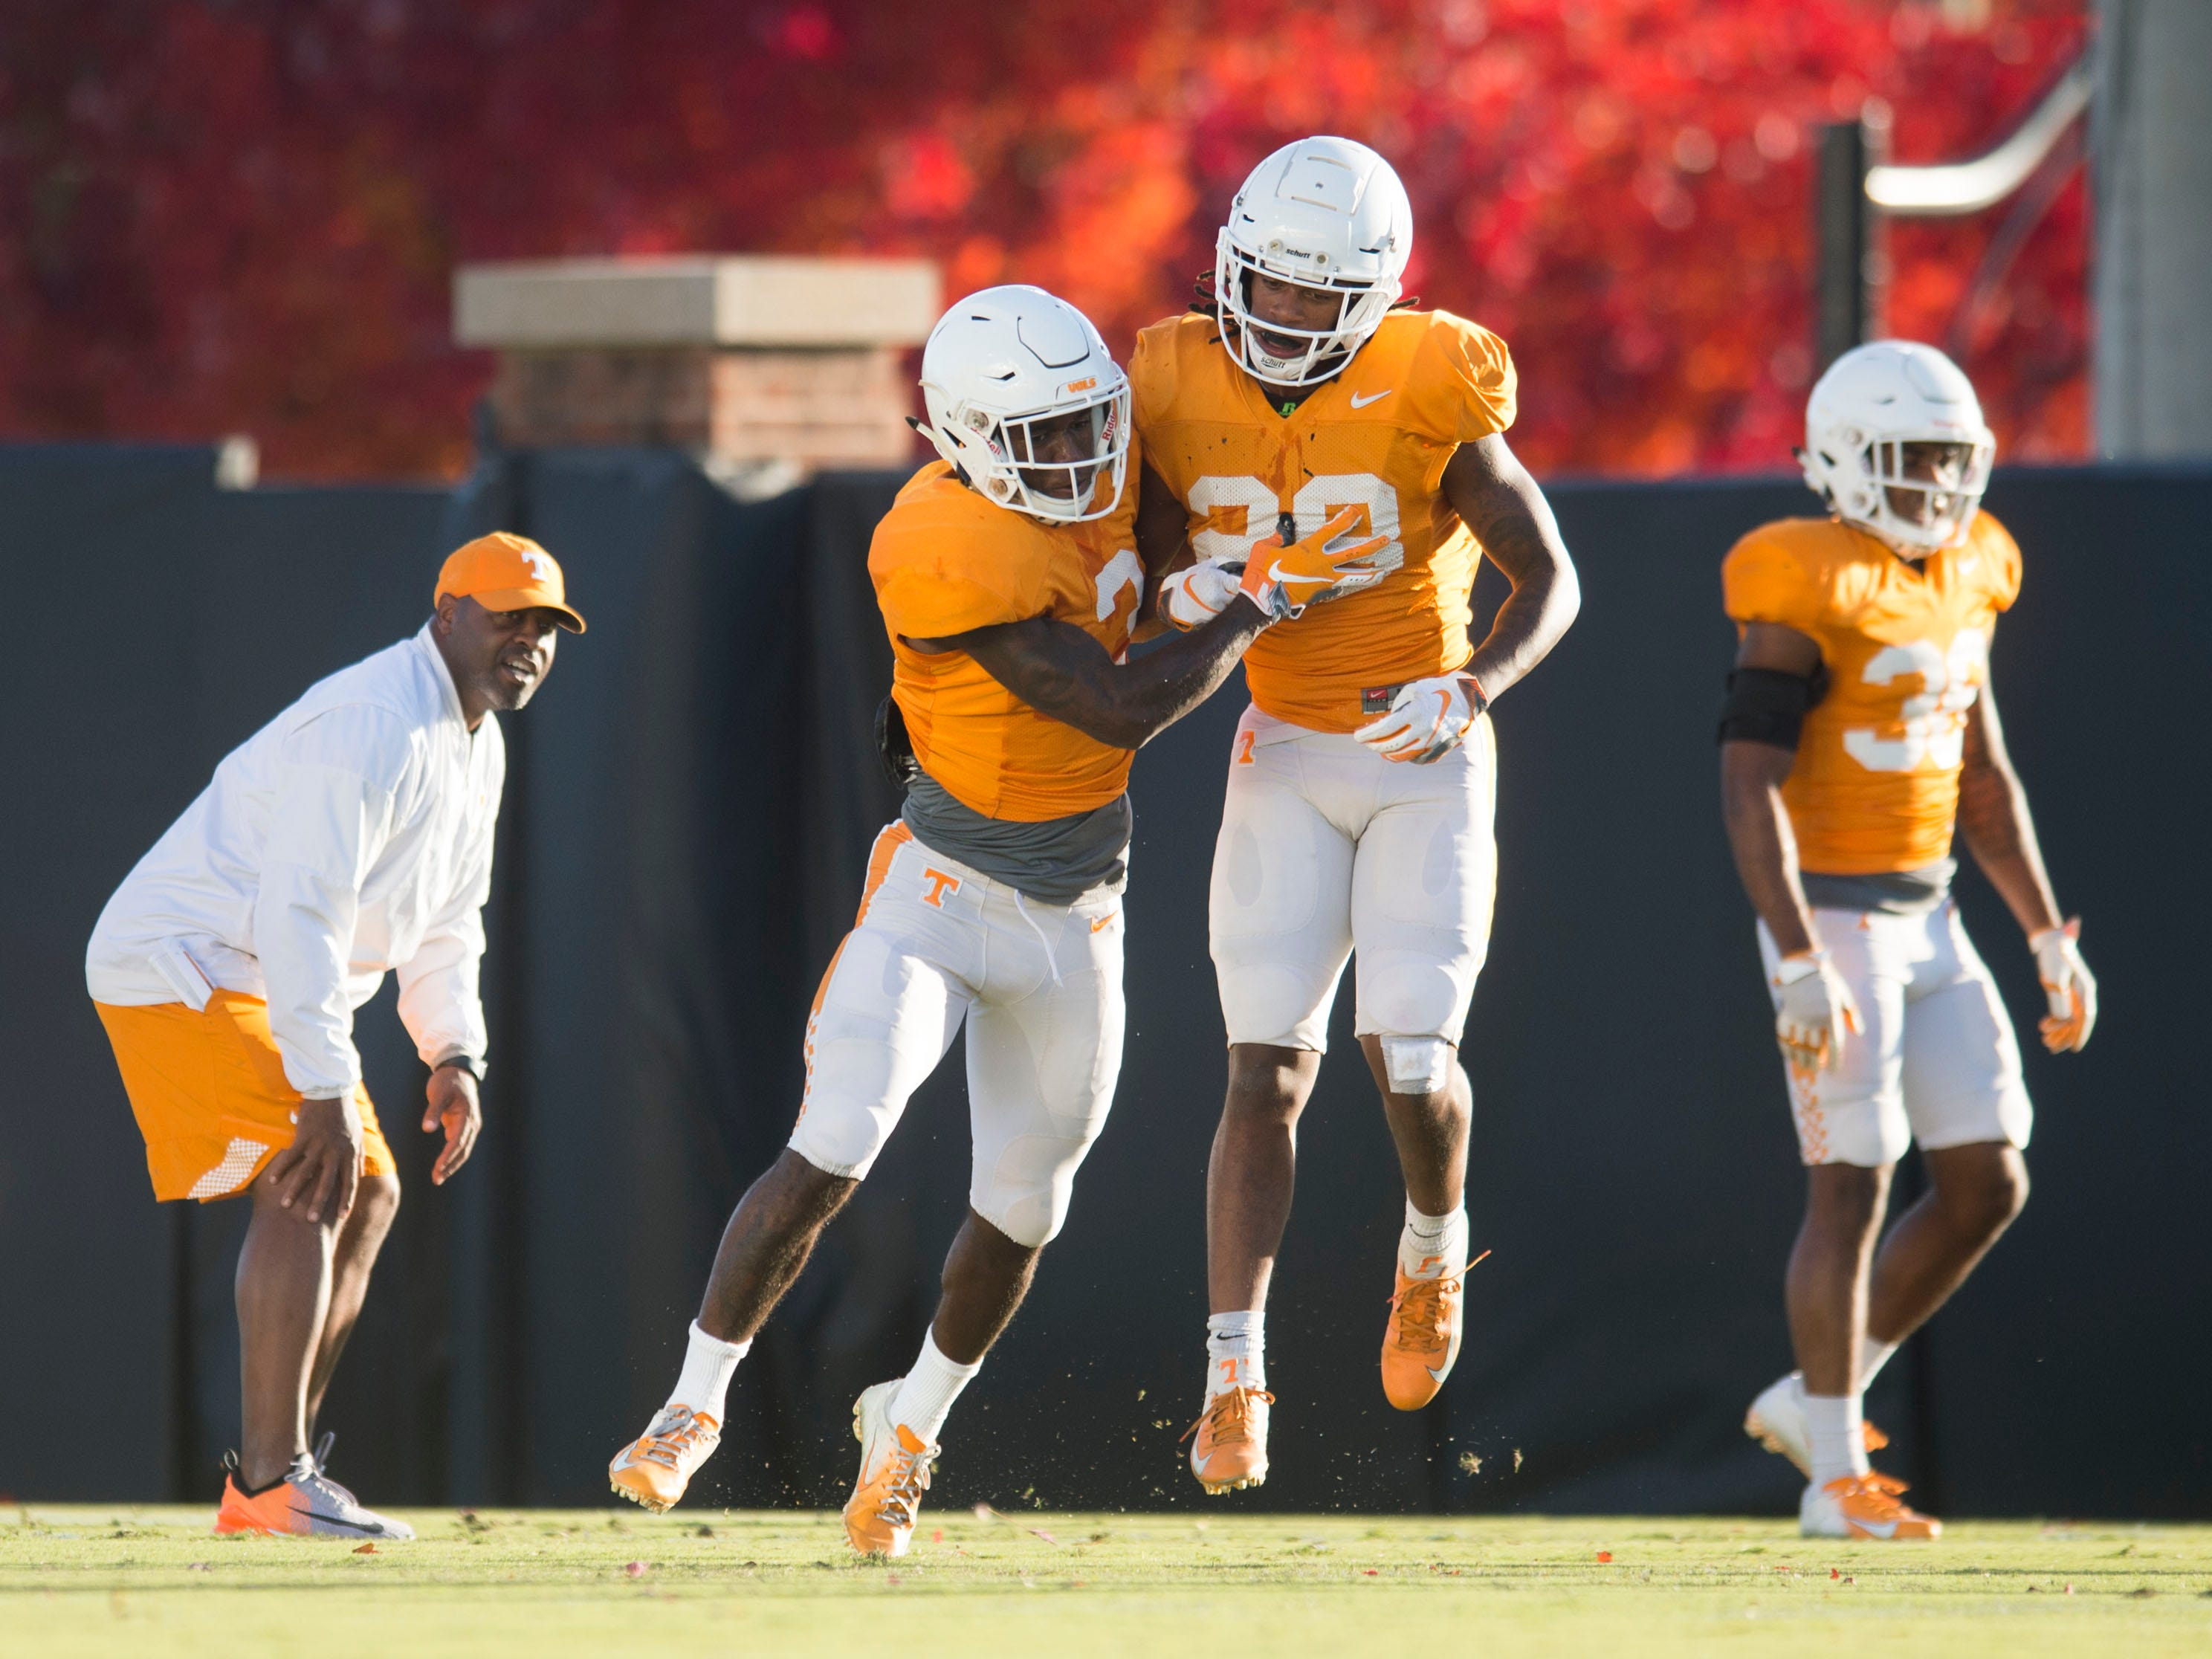 Tennessee defensive backs Marquill Osborne (3) and Baylen Buchanan (28) at football practice on Tuesday, November 6, 2018.